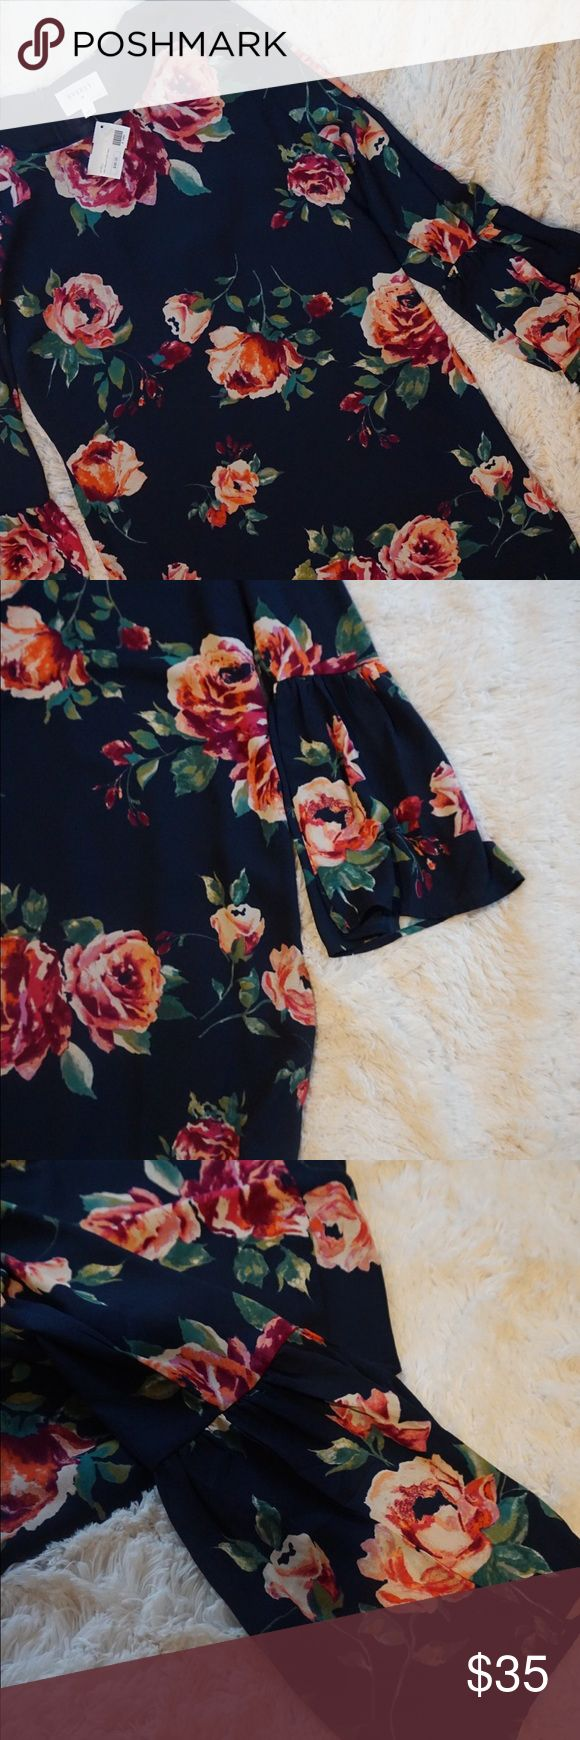 NWT Everly Navy floral dress NWT Everly Navy floral dress size large Everly Dresses Mini